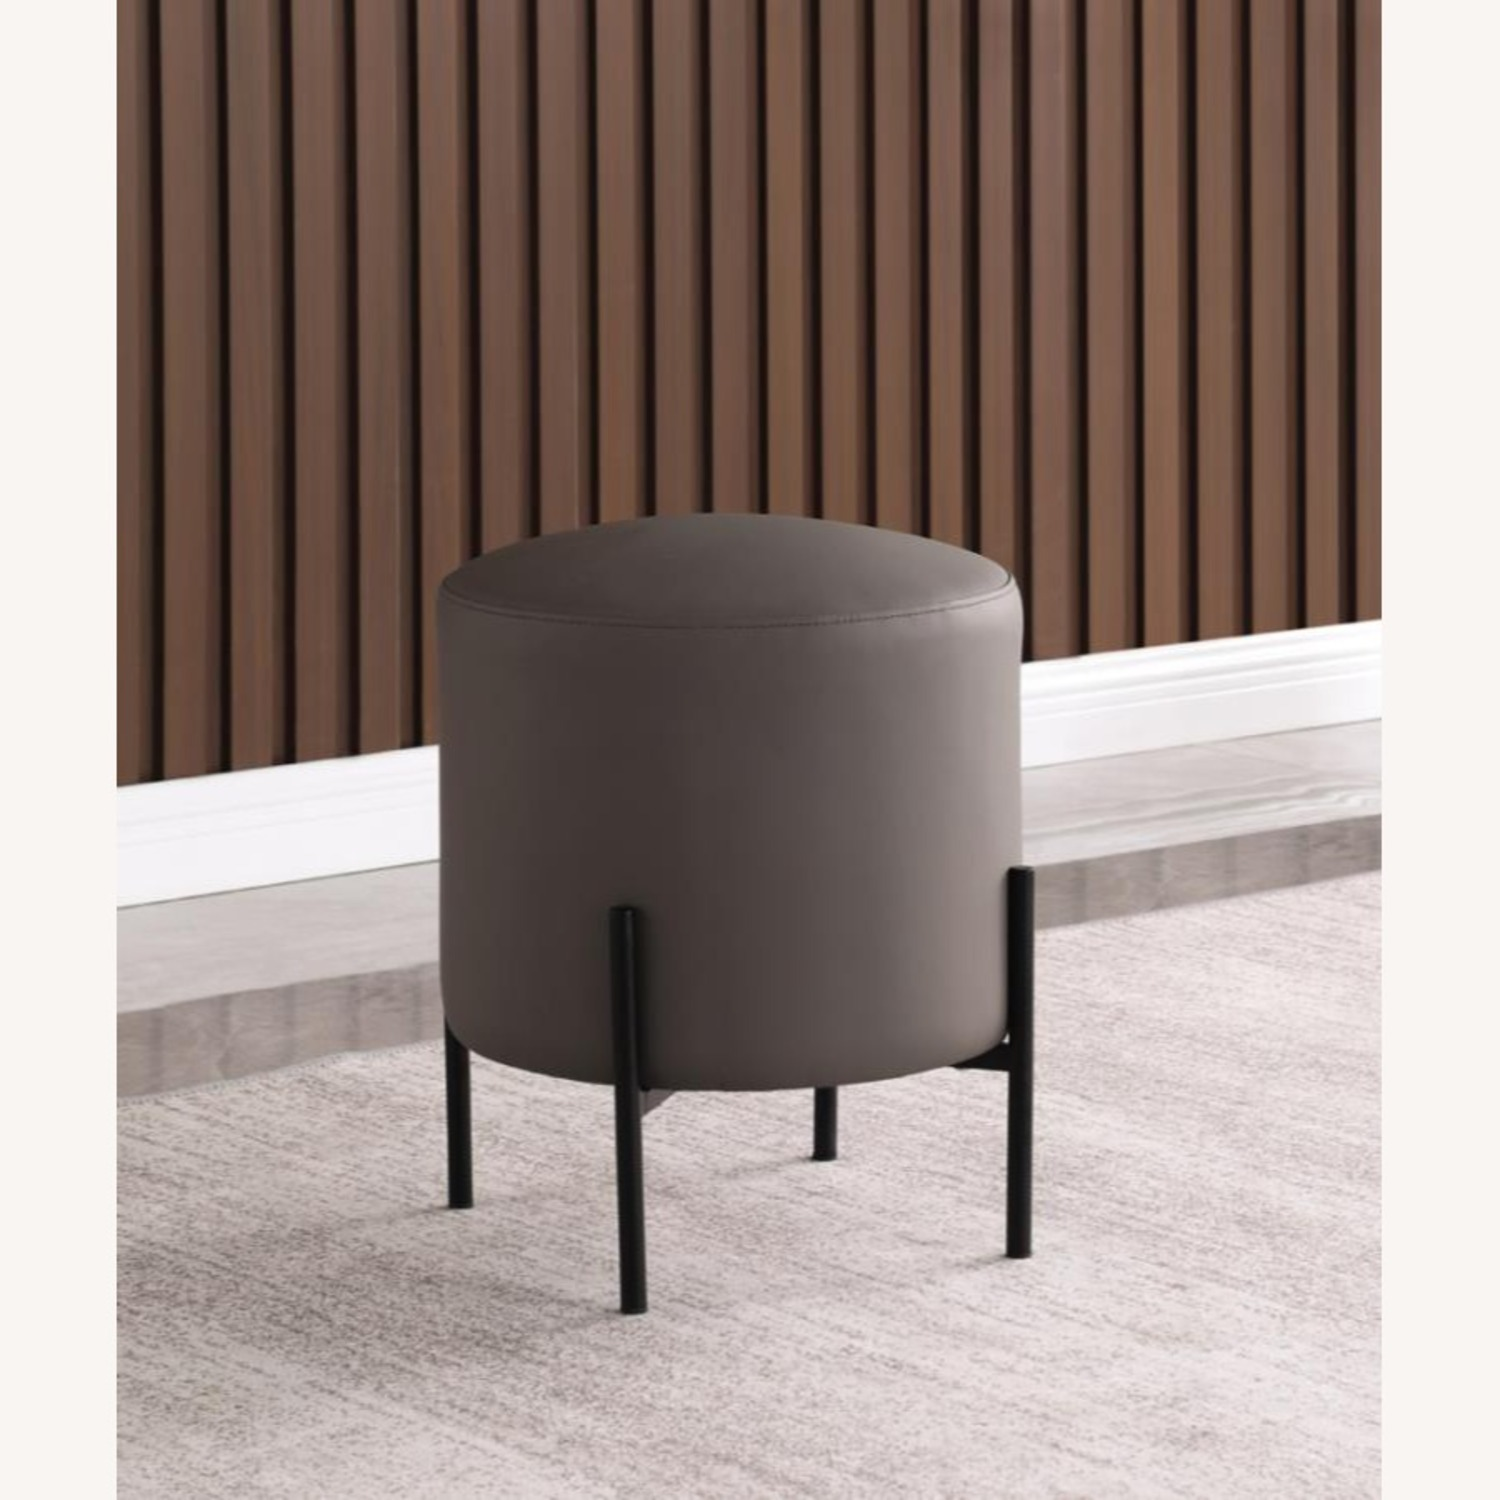 Ottoman In Light Grey & Leatherette Upholstery - image-2